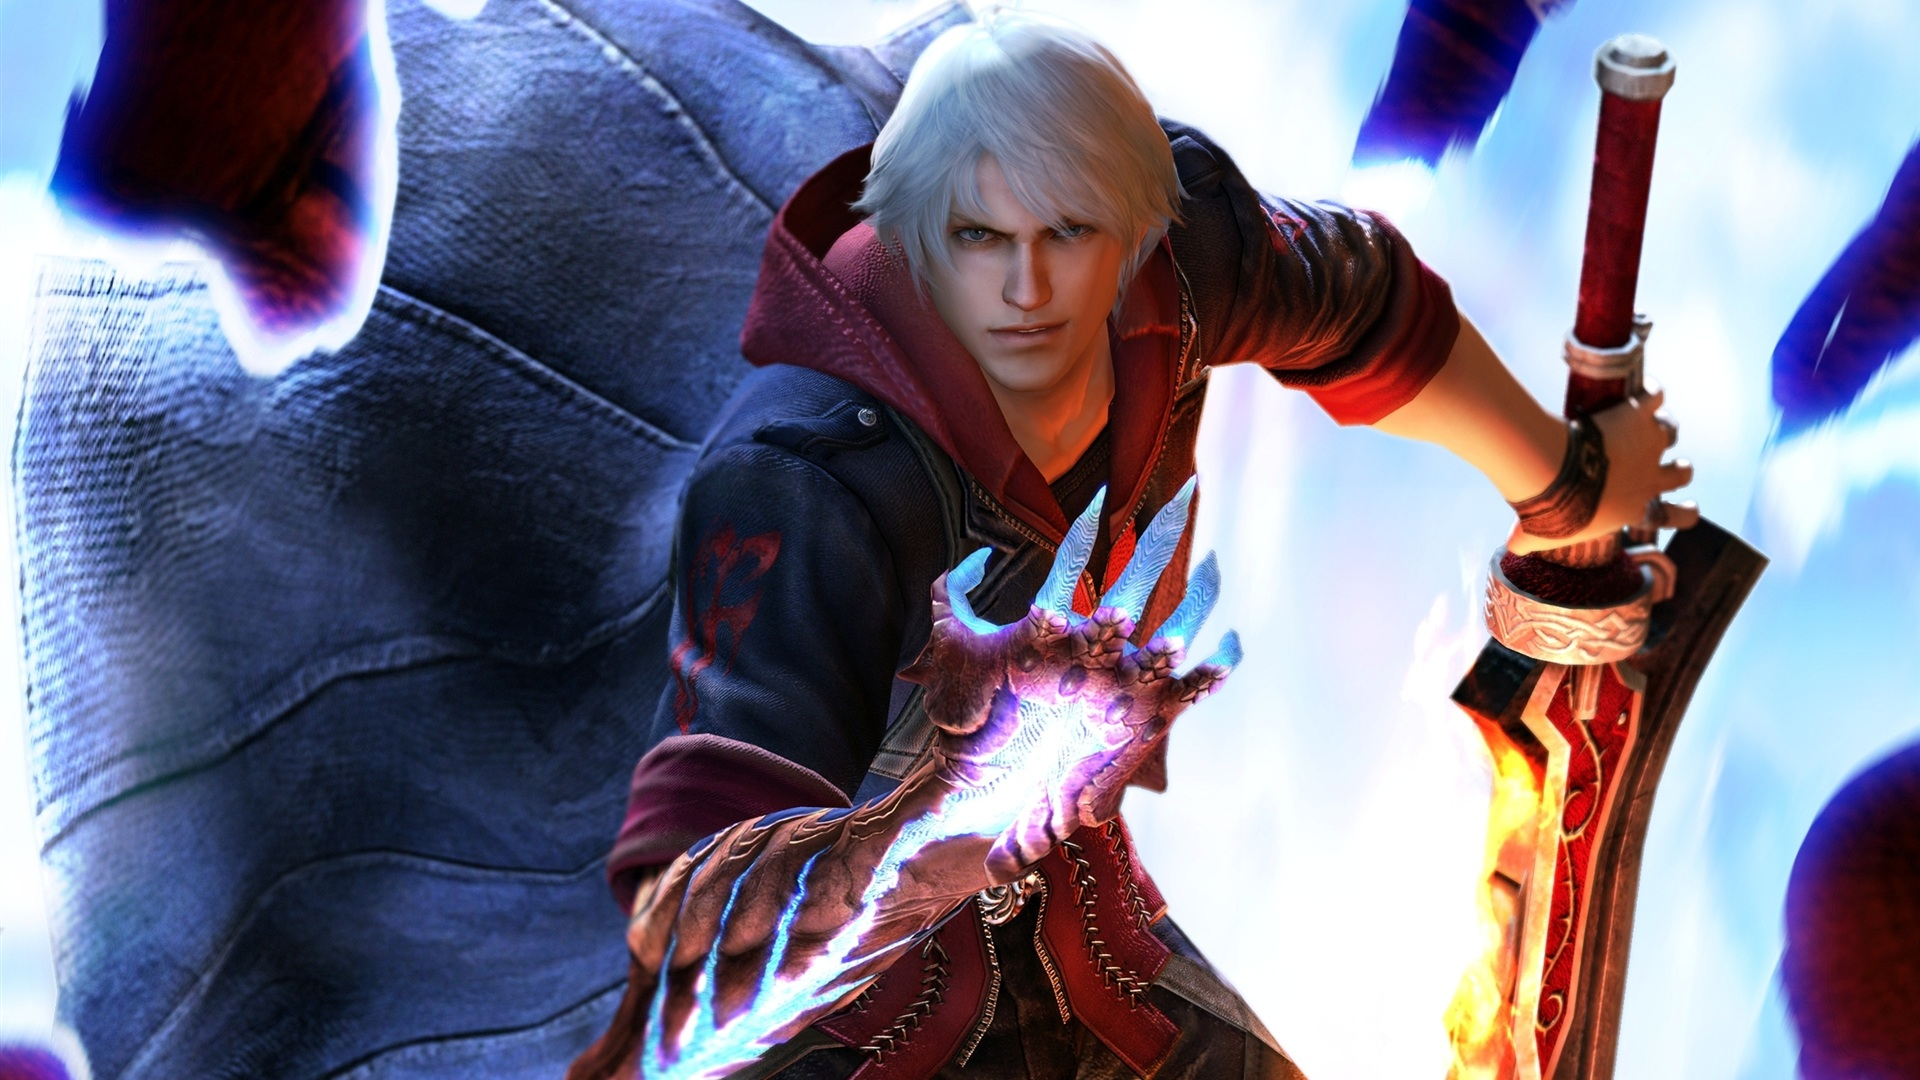 Wallpaper Devil May Cry 4 Pc Game 2560x1600 Hd Picture Image